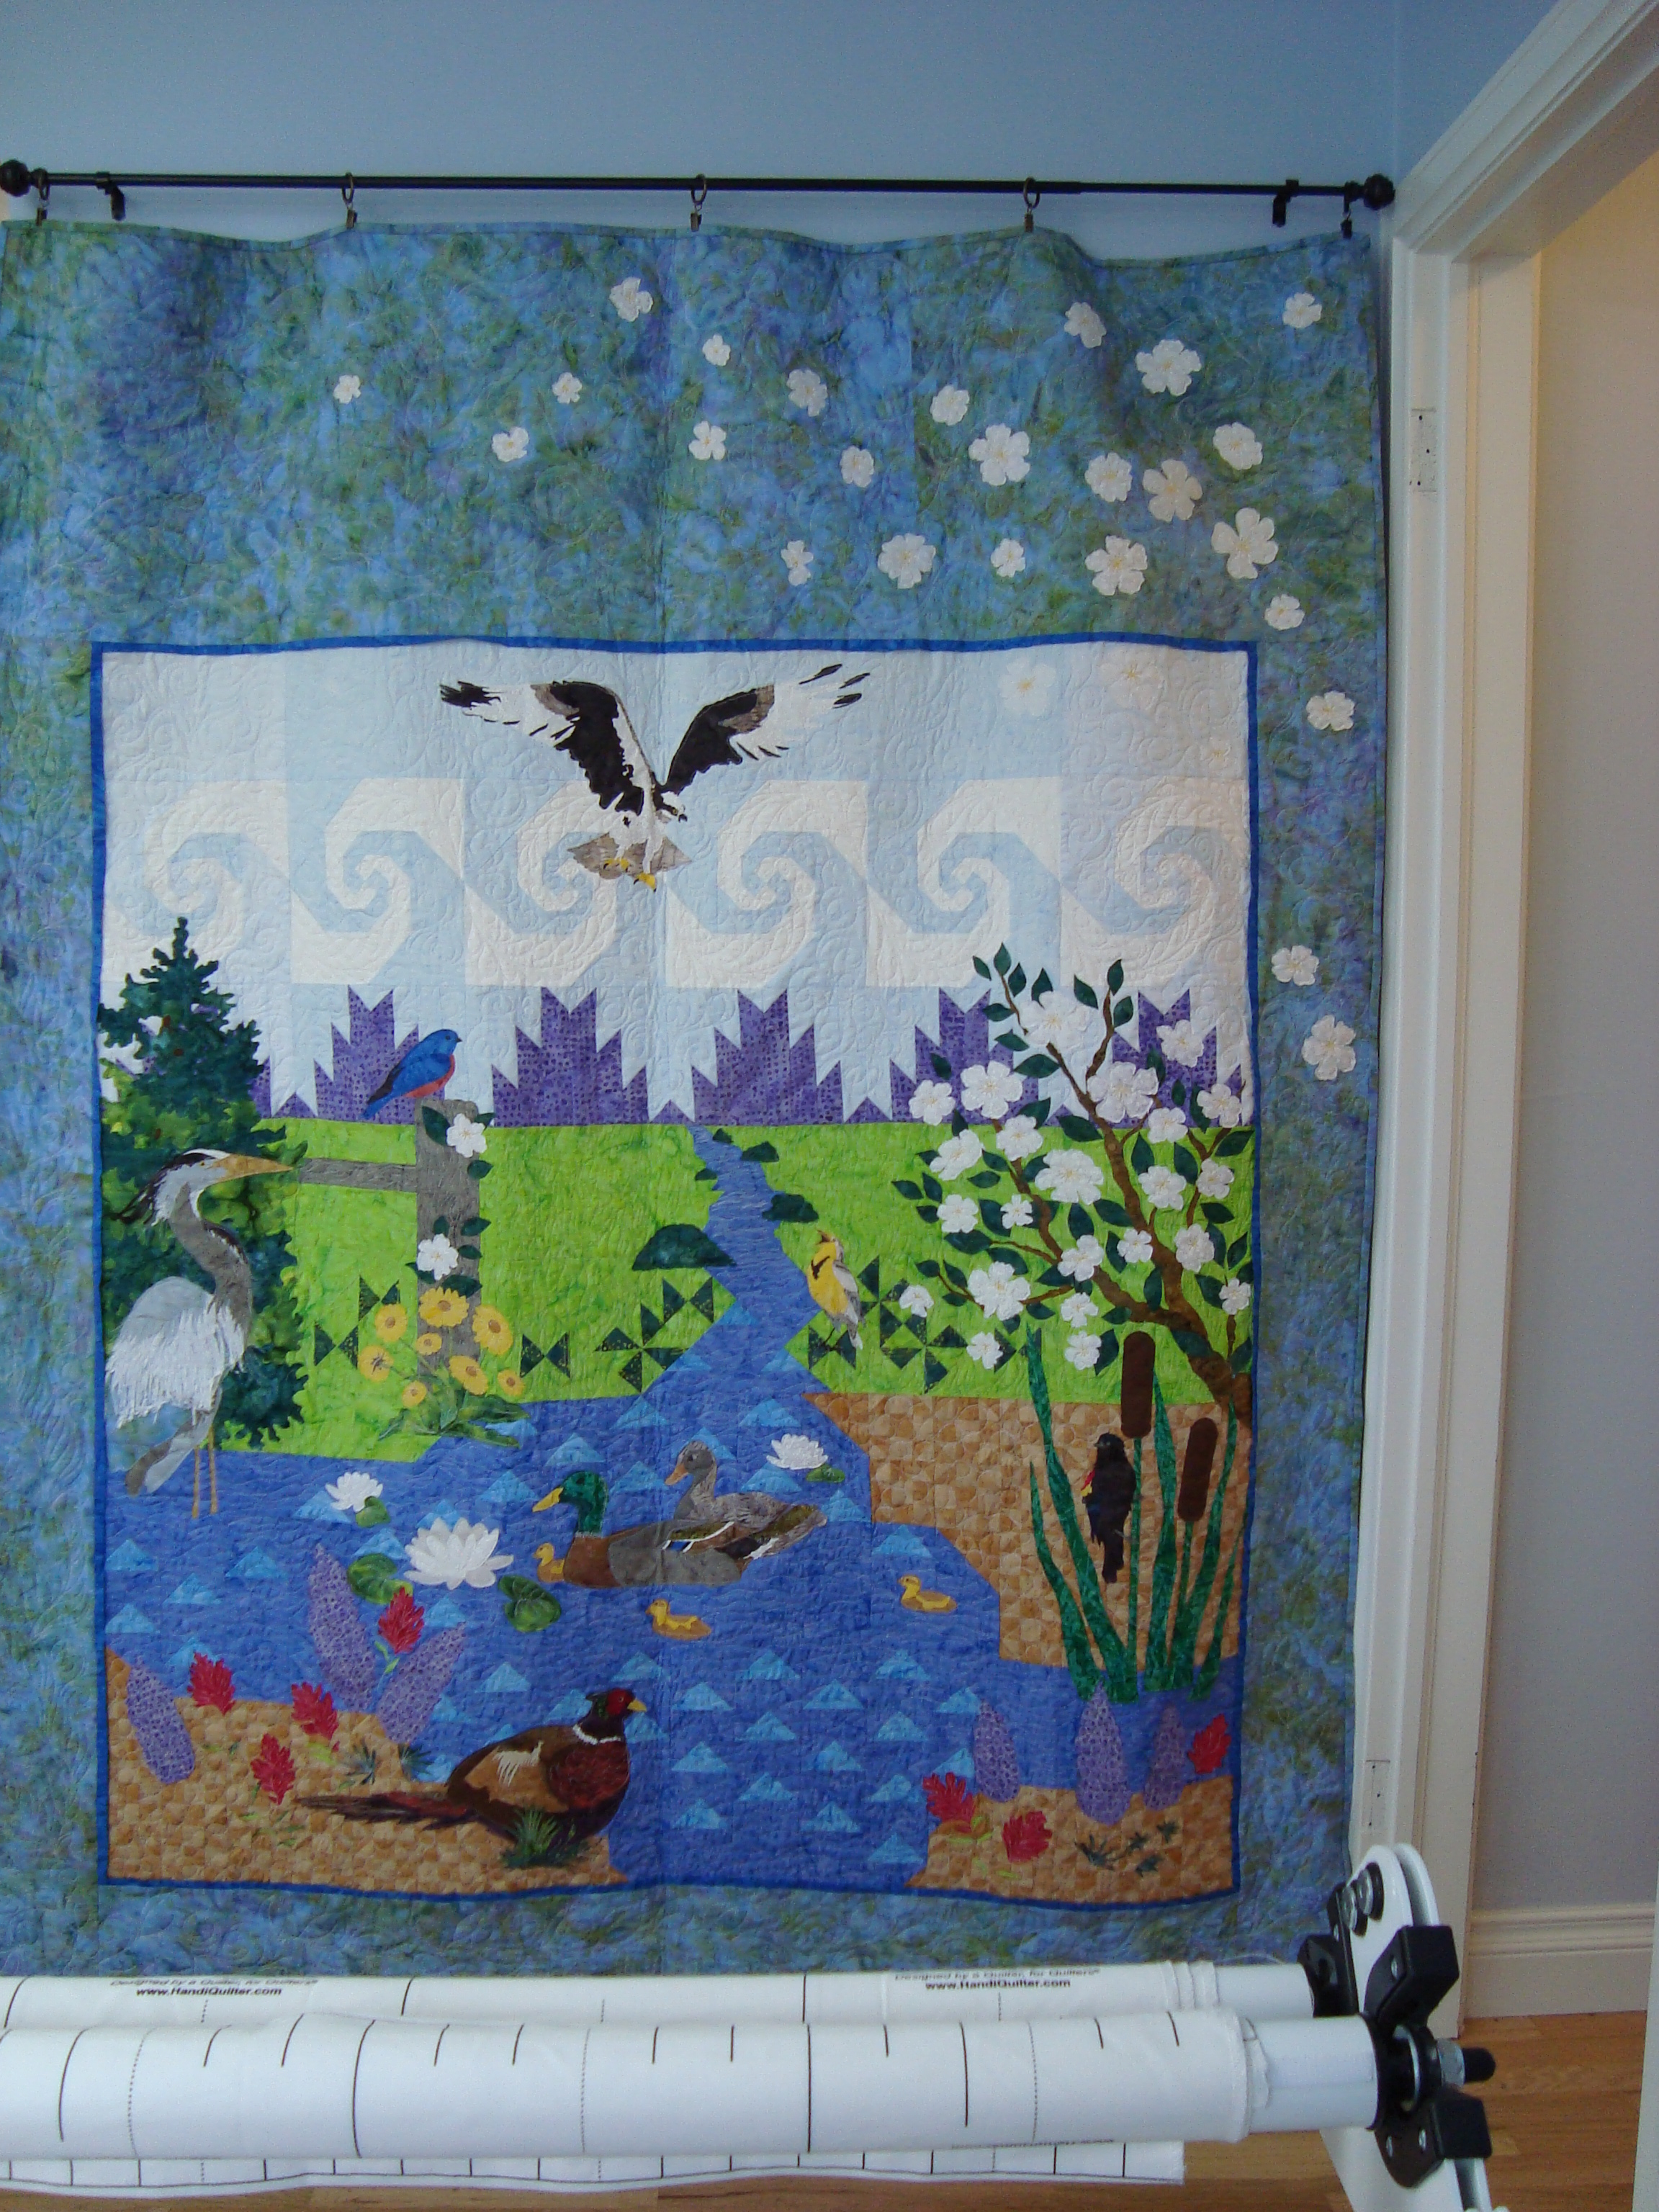 Free Introduction to Bluebird Quilt Studio Online Learning